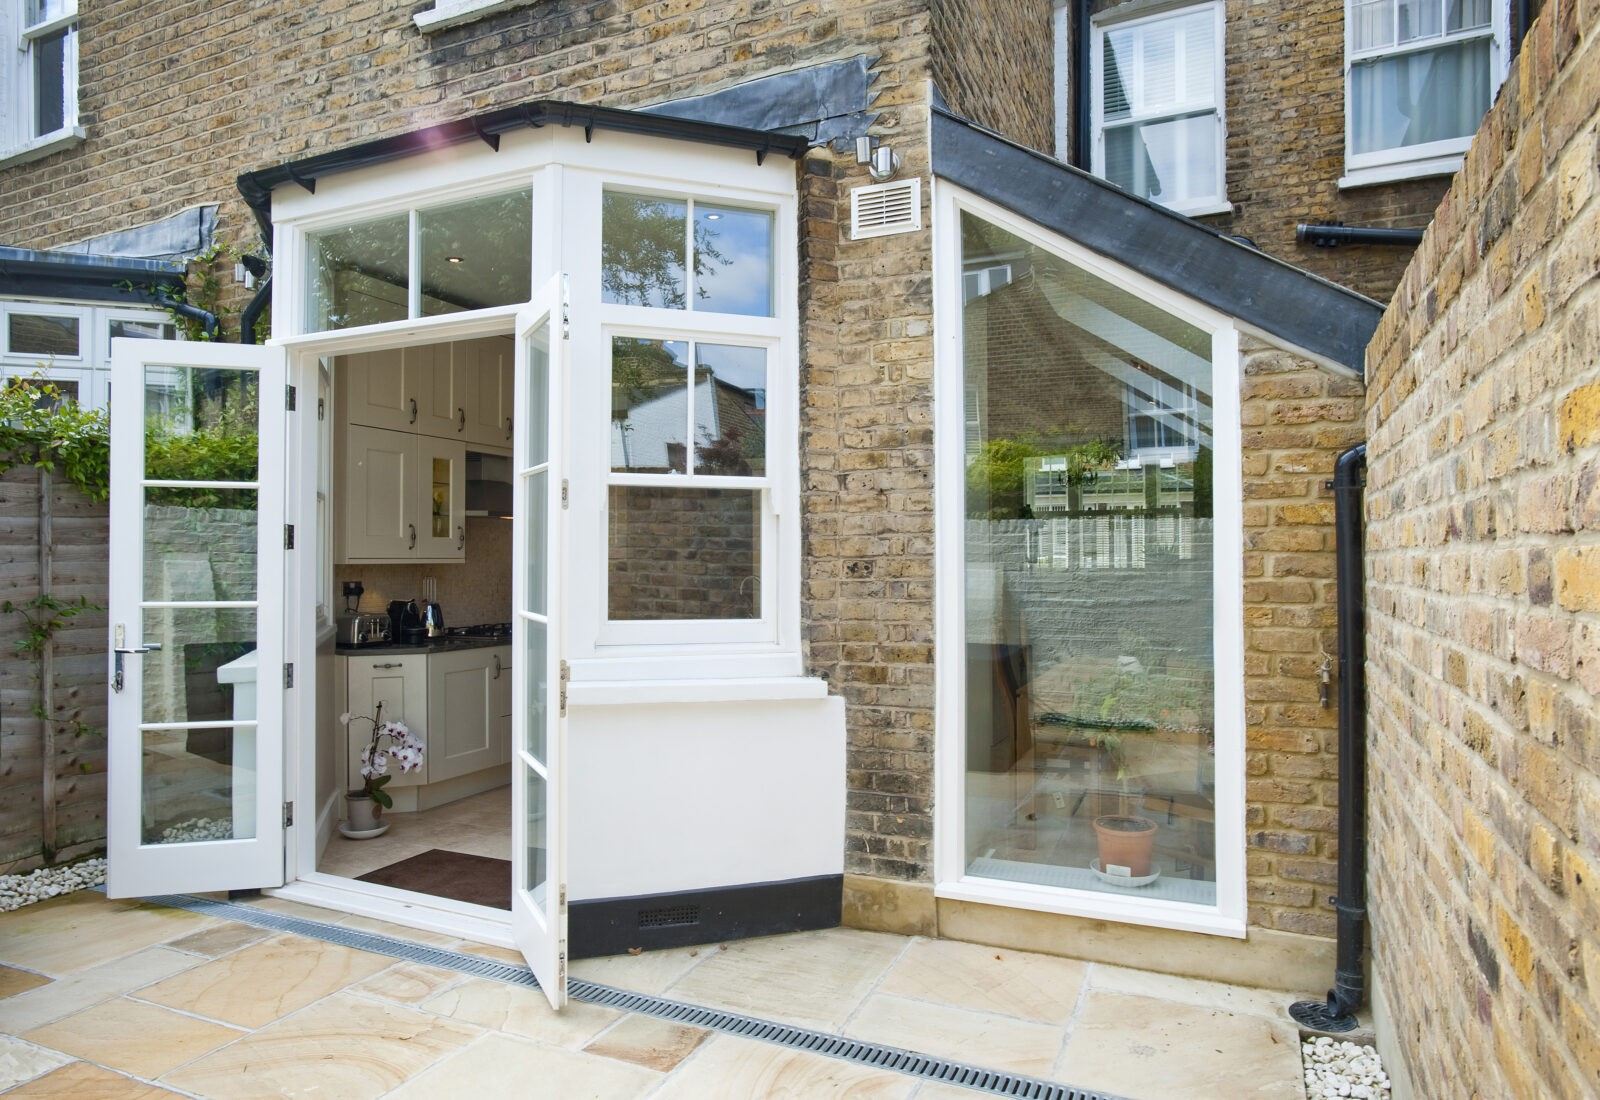 The Homeowners Wanted French Doors In Centre Of Their New Sash Bay Windows And A Full Window To Contrast Traditional Nature Building With